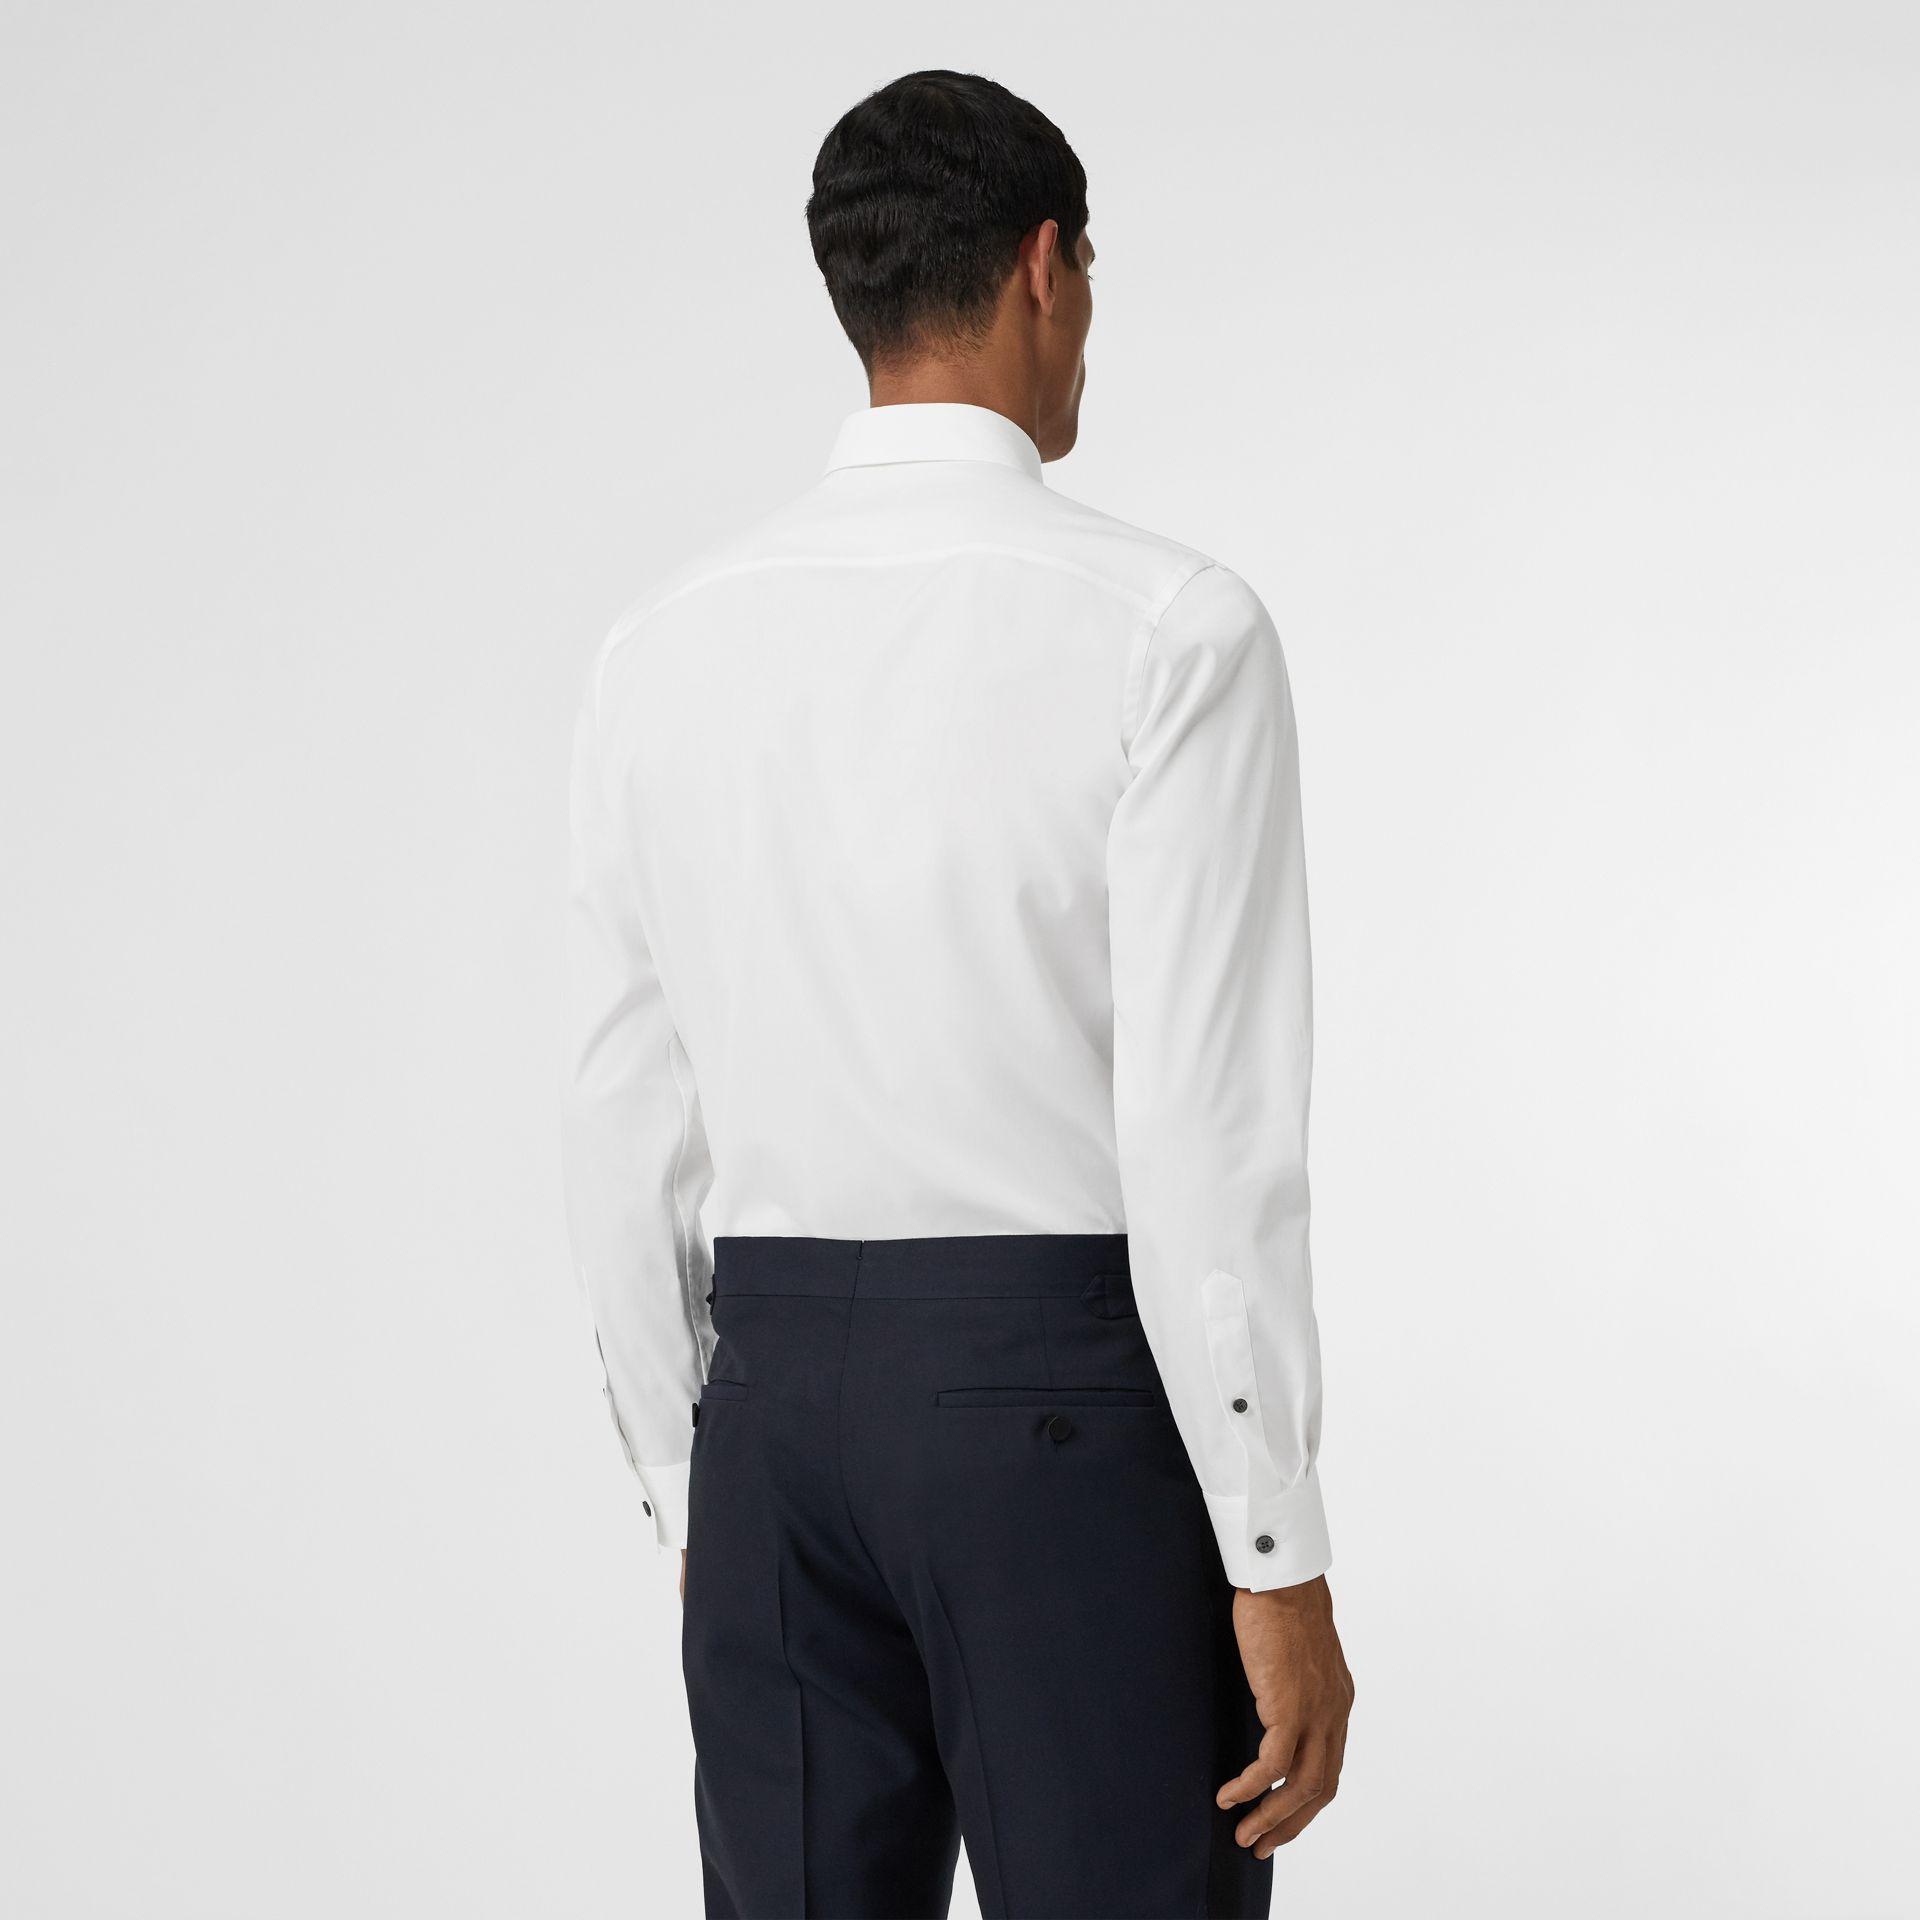 Monogram Motif Stretch Cotton Poplin Shirt in White - Men | Burberry United States - gallery image 2